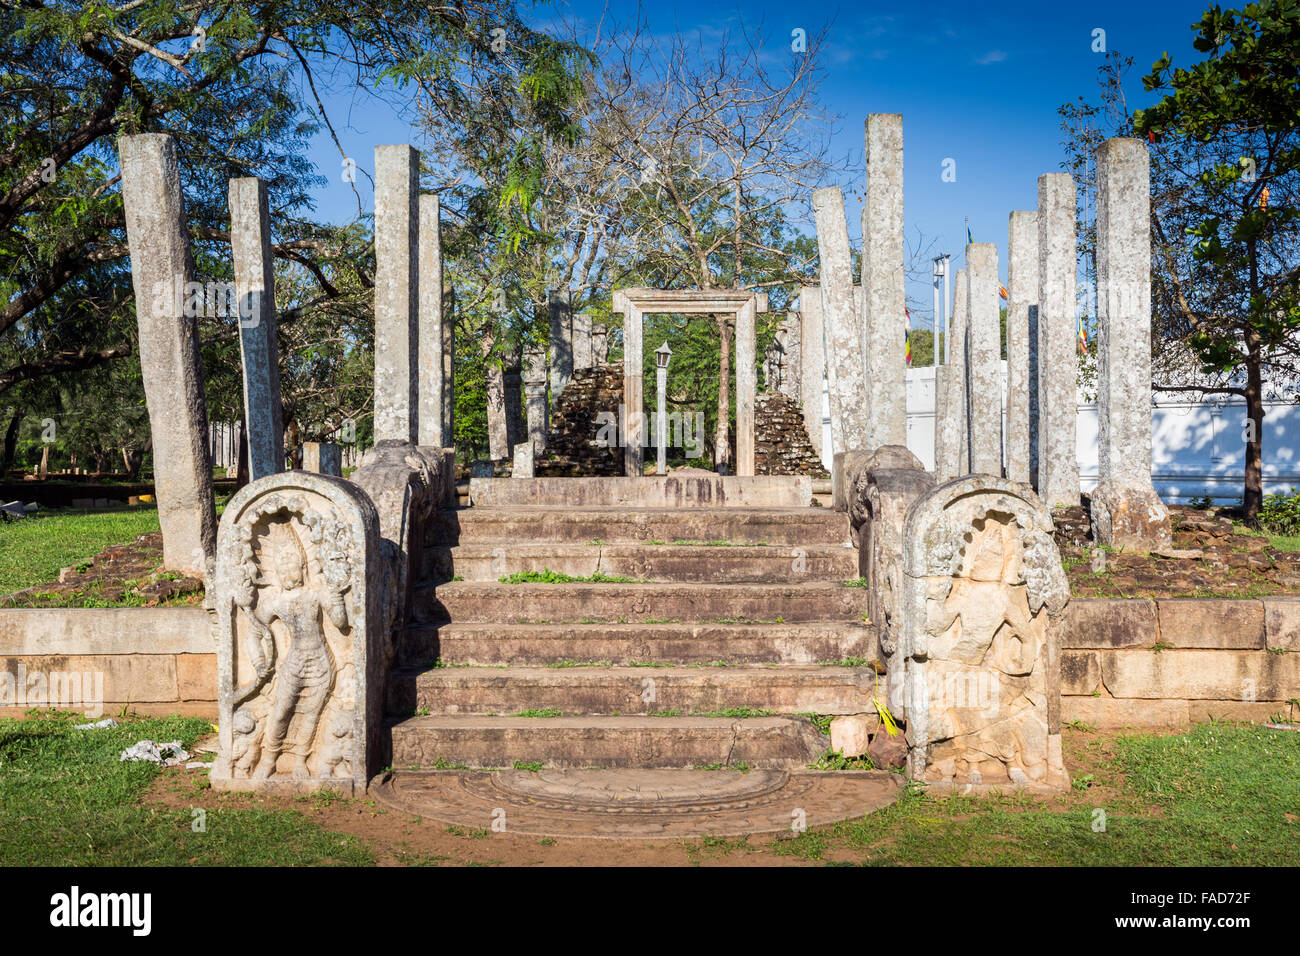 Ruins of Sacred City of Anuradhapura, UNESCO World Heritage Site, North Central Province, Sri Lanka, Asia Stock Photo